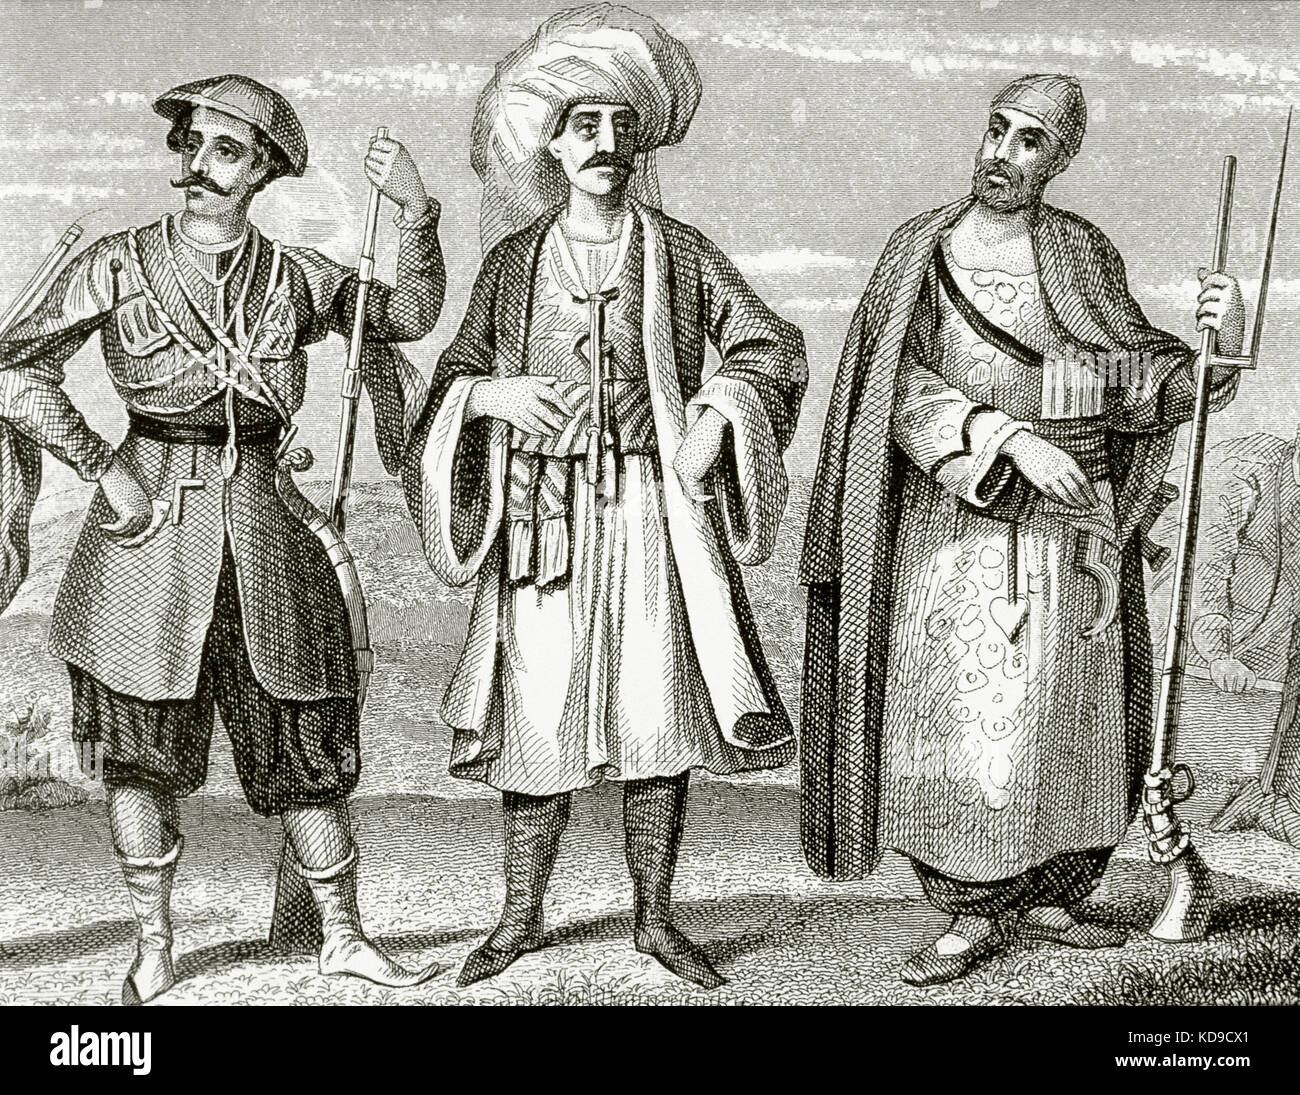 Janissaries. Elite infantry units that formed the Ottoman Sultan's household troops and bodyguards. Engraving. 19th Stock Photo